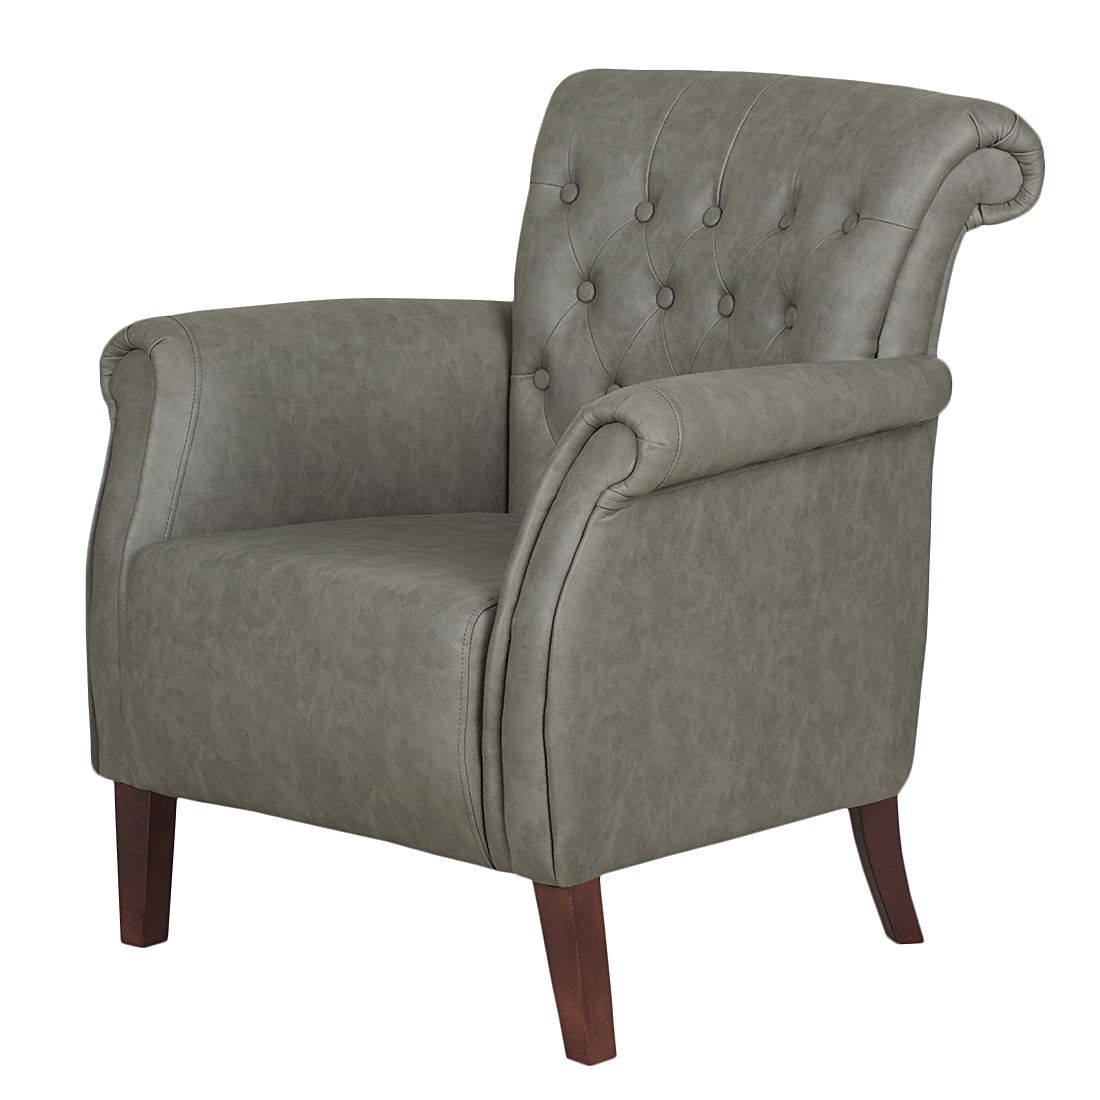 Fauteuil Harmonia - Cuir synthétique - Gris, ars manufacti